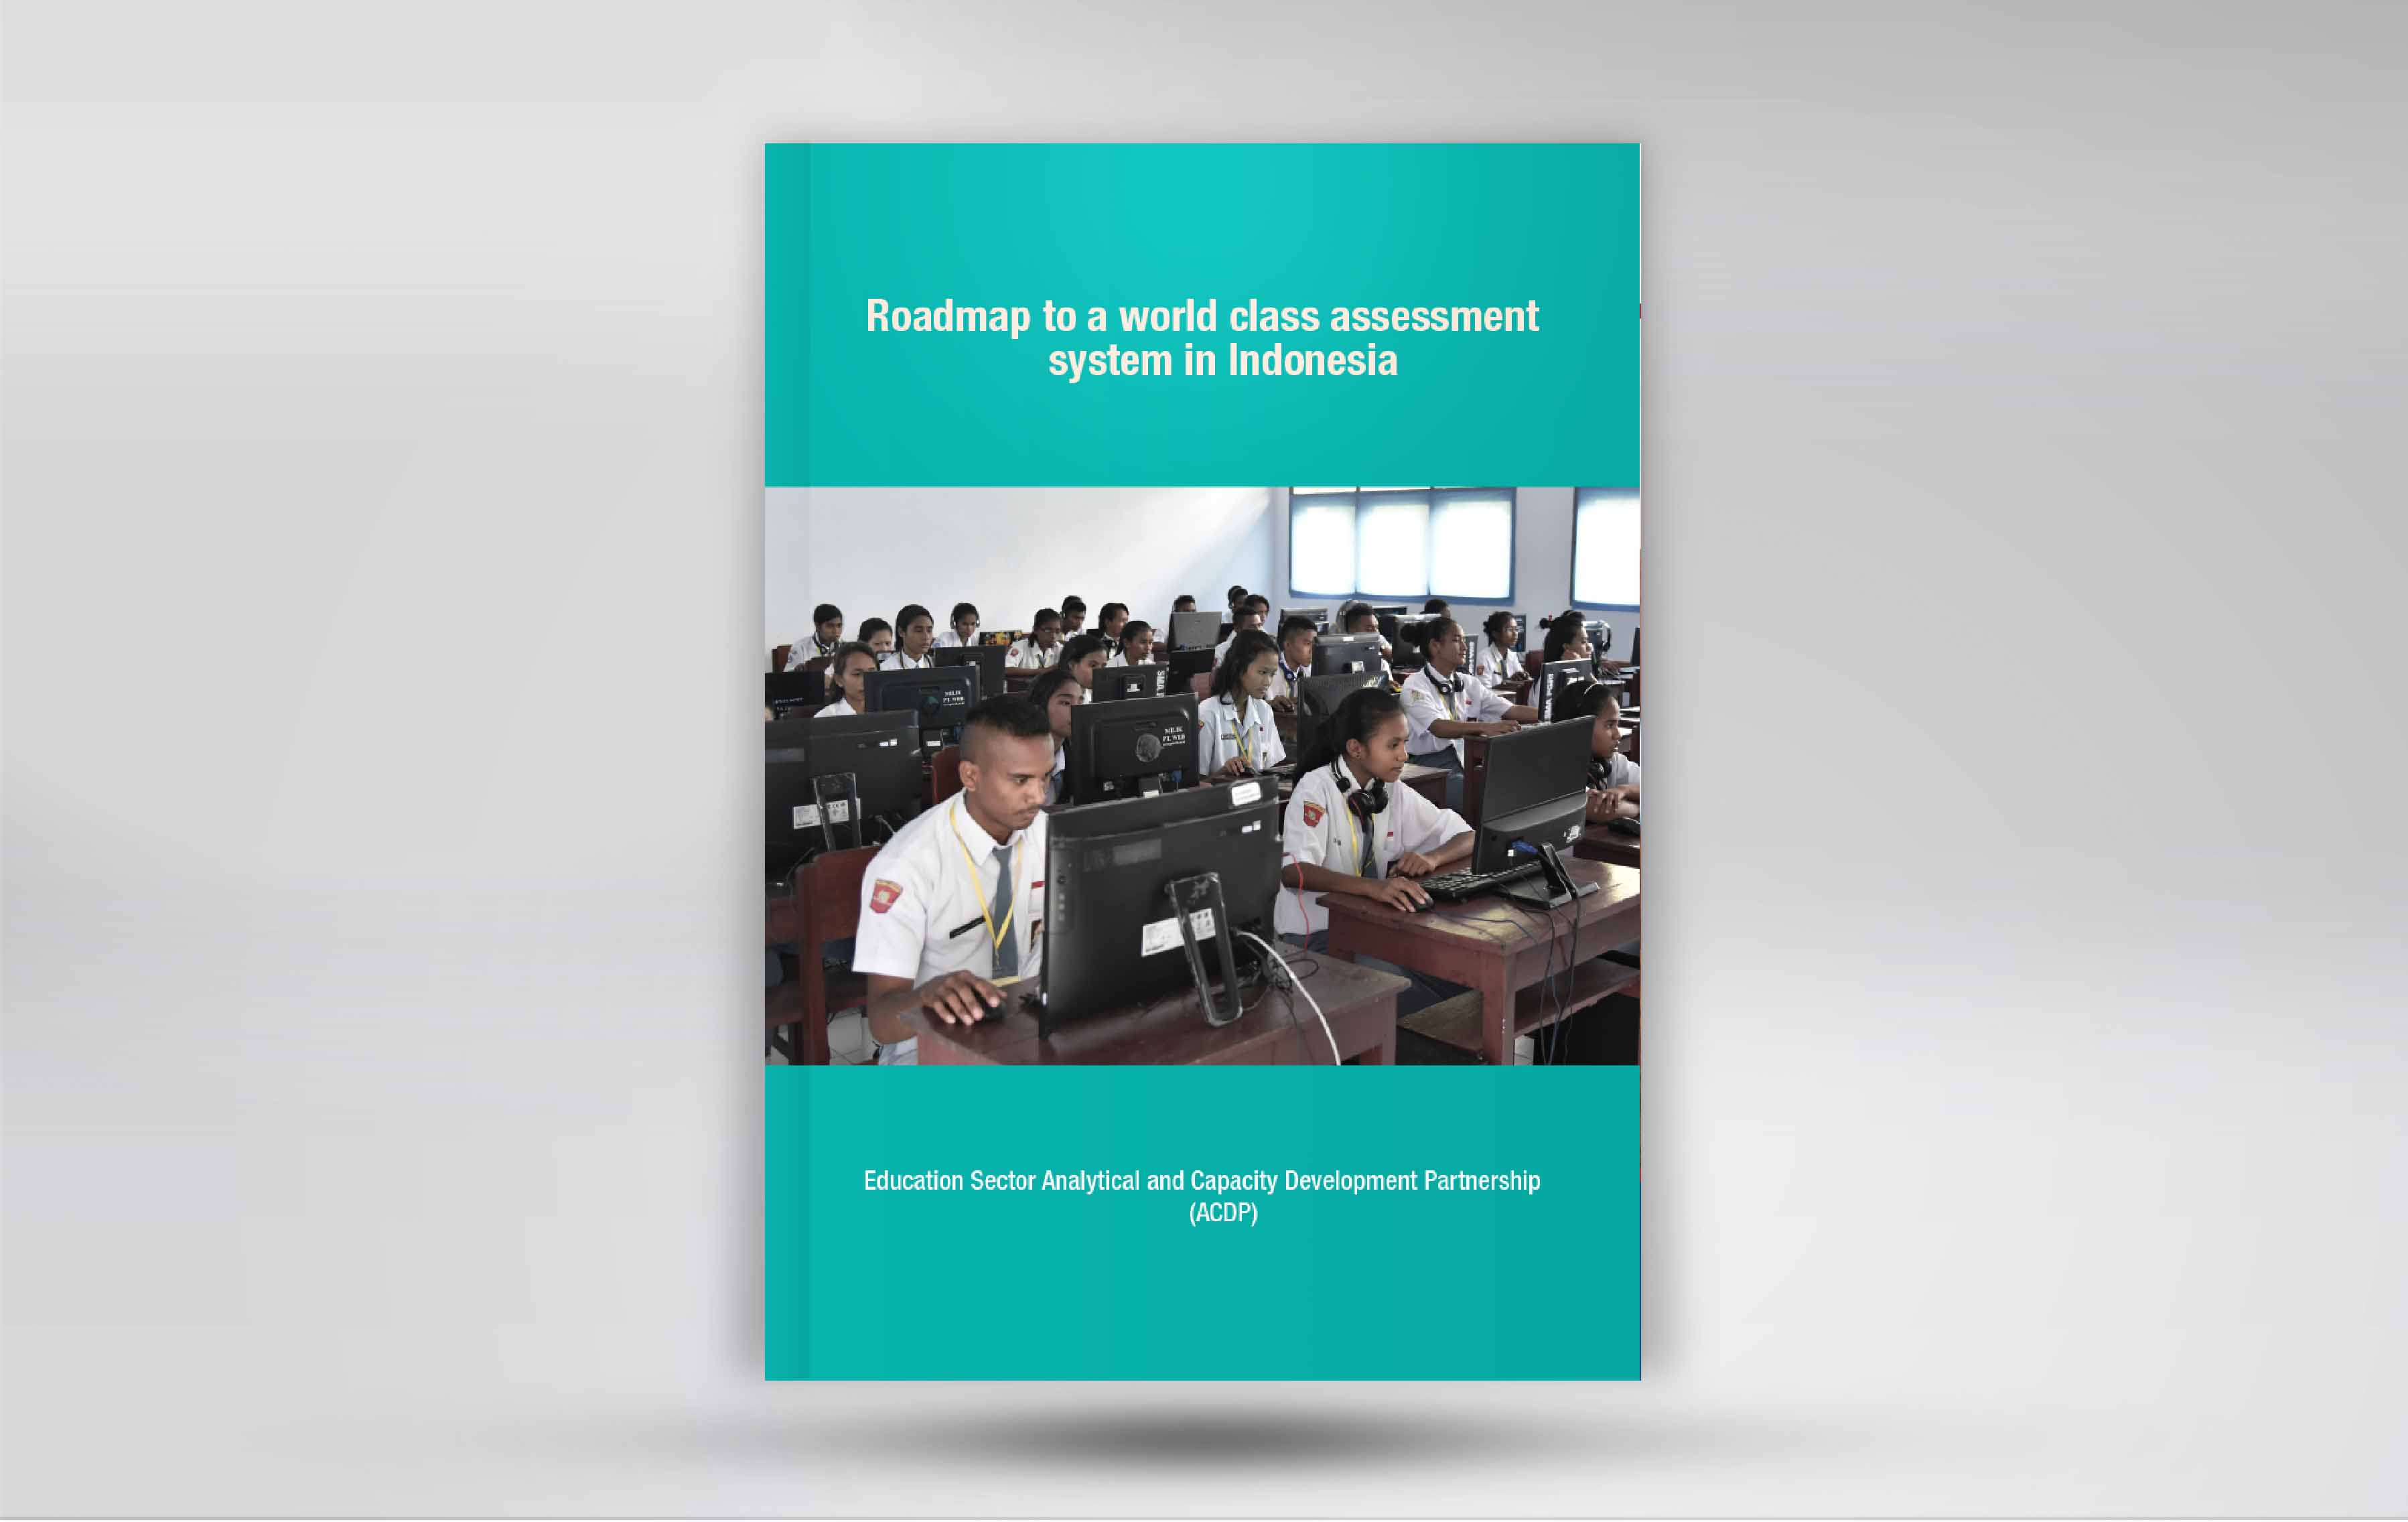 Roadmap to a First Class Assessment System in Indonesia